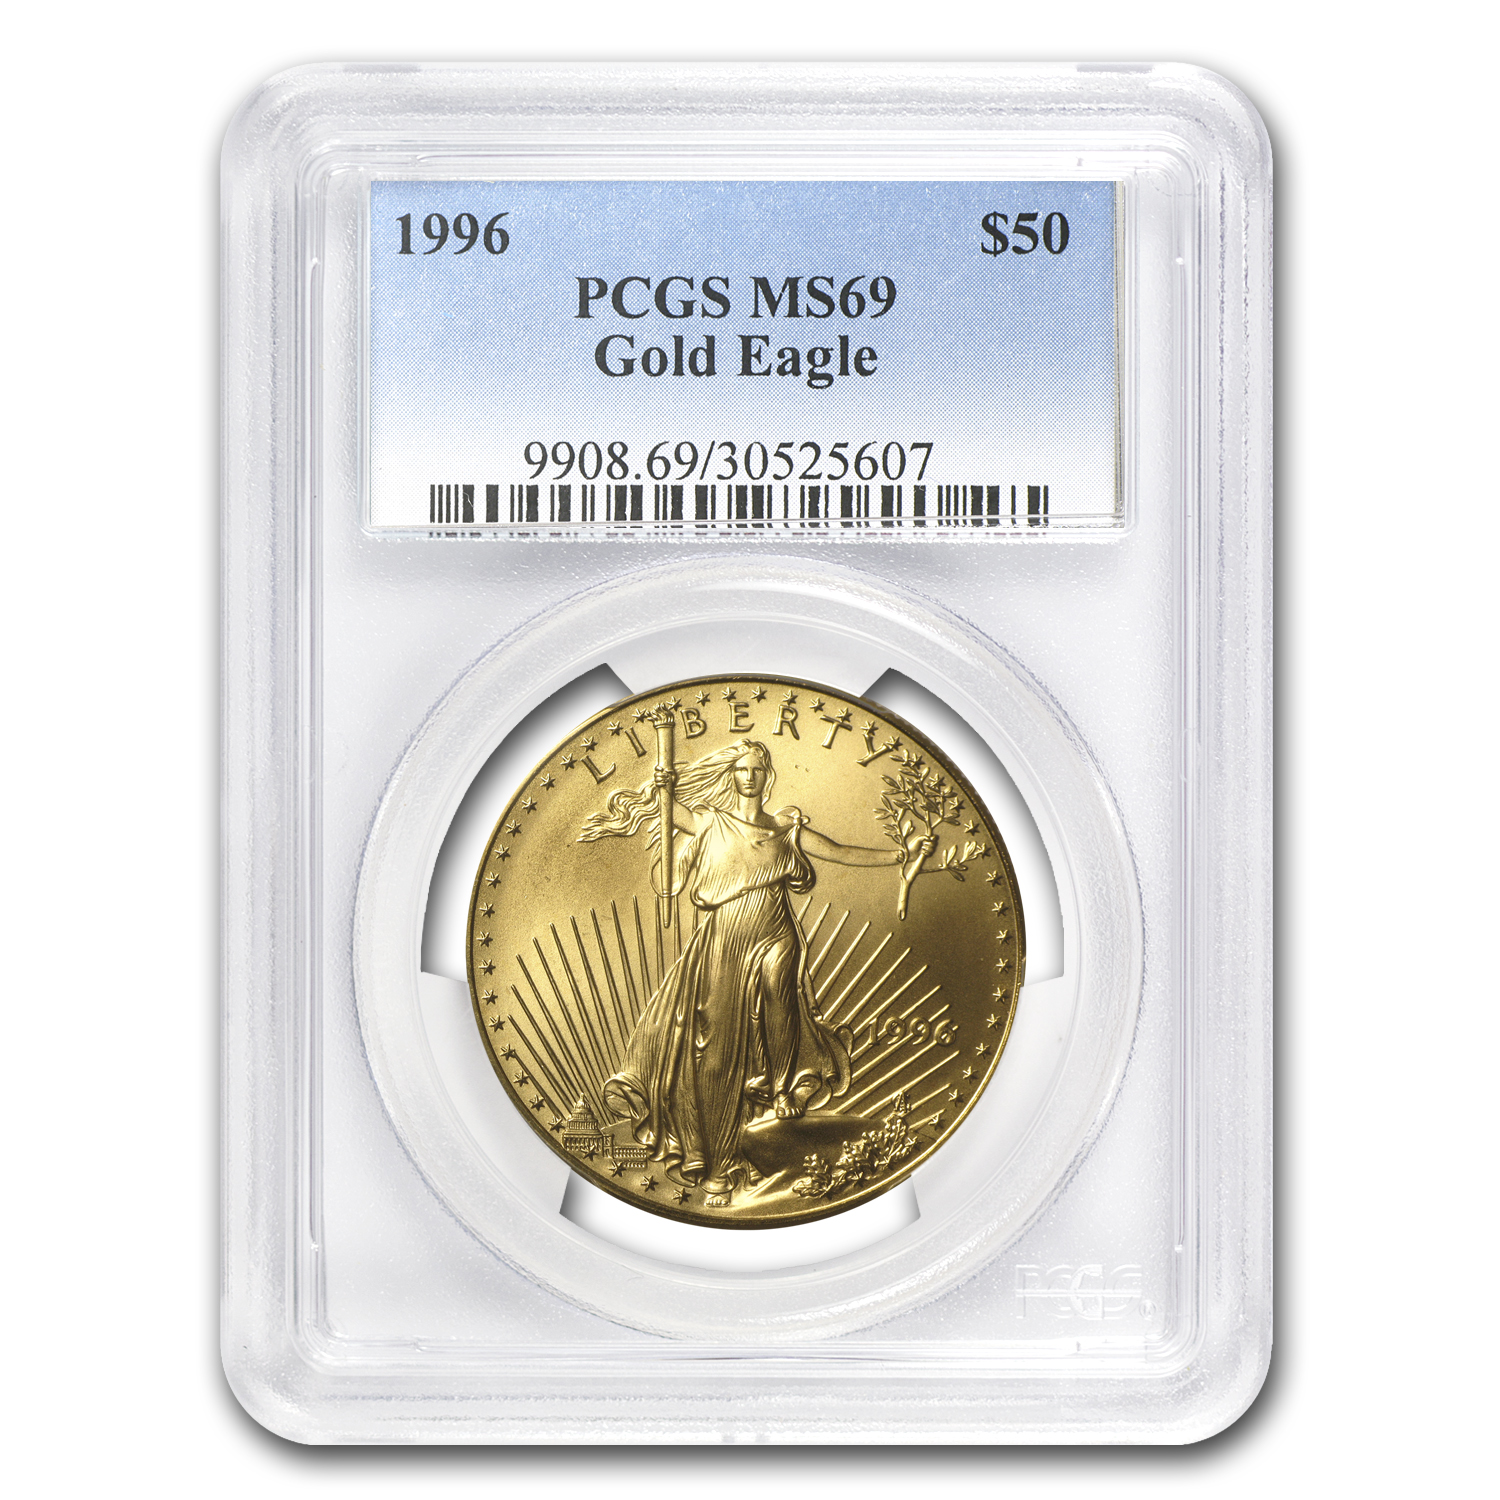 1996 1 oz Gold American Eagle MS-69 PCGS